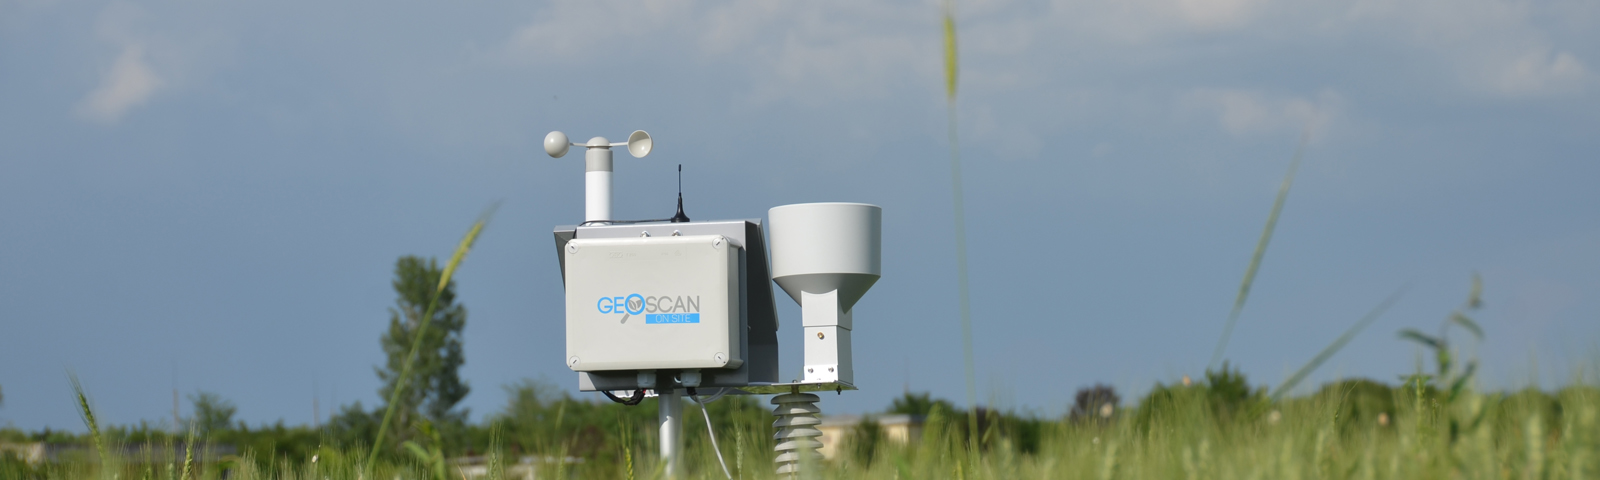 geoscan-onsite-meteo-station-on-the-field